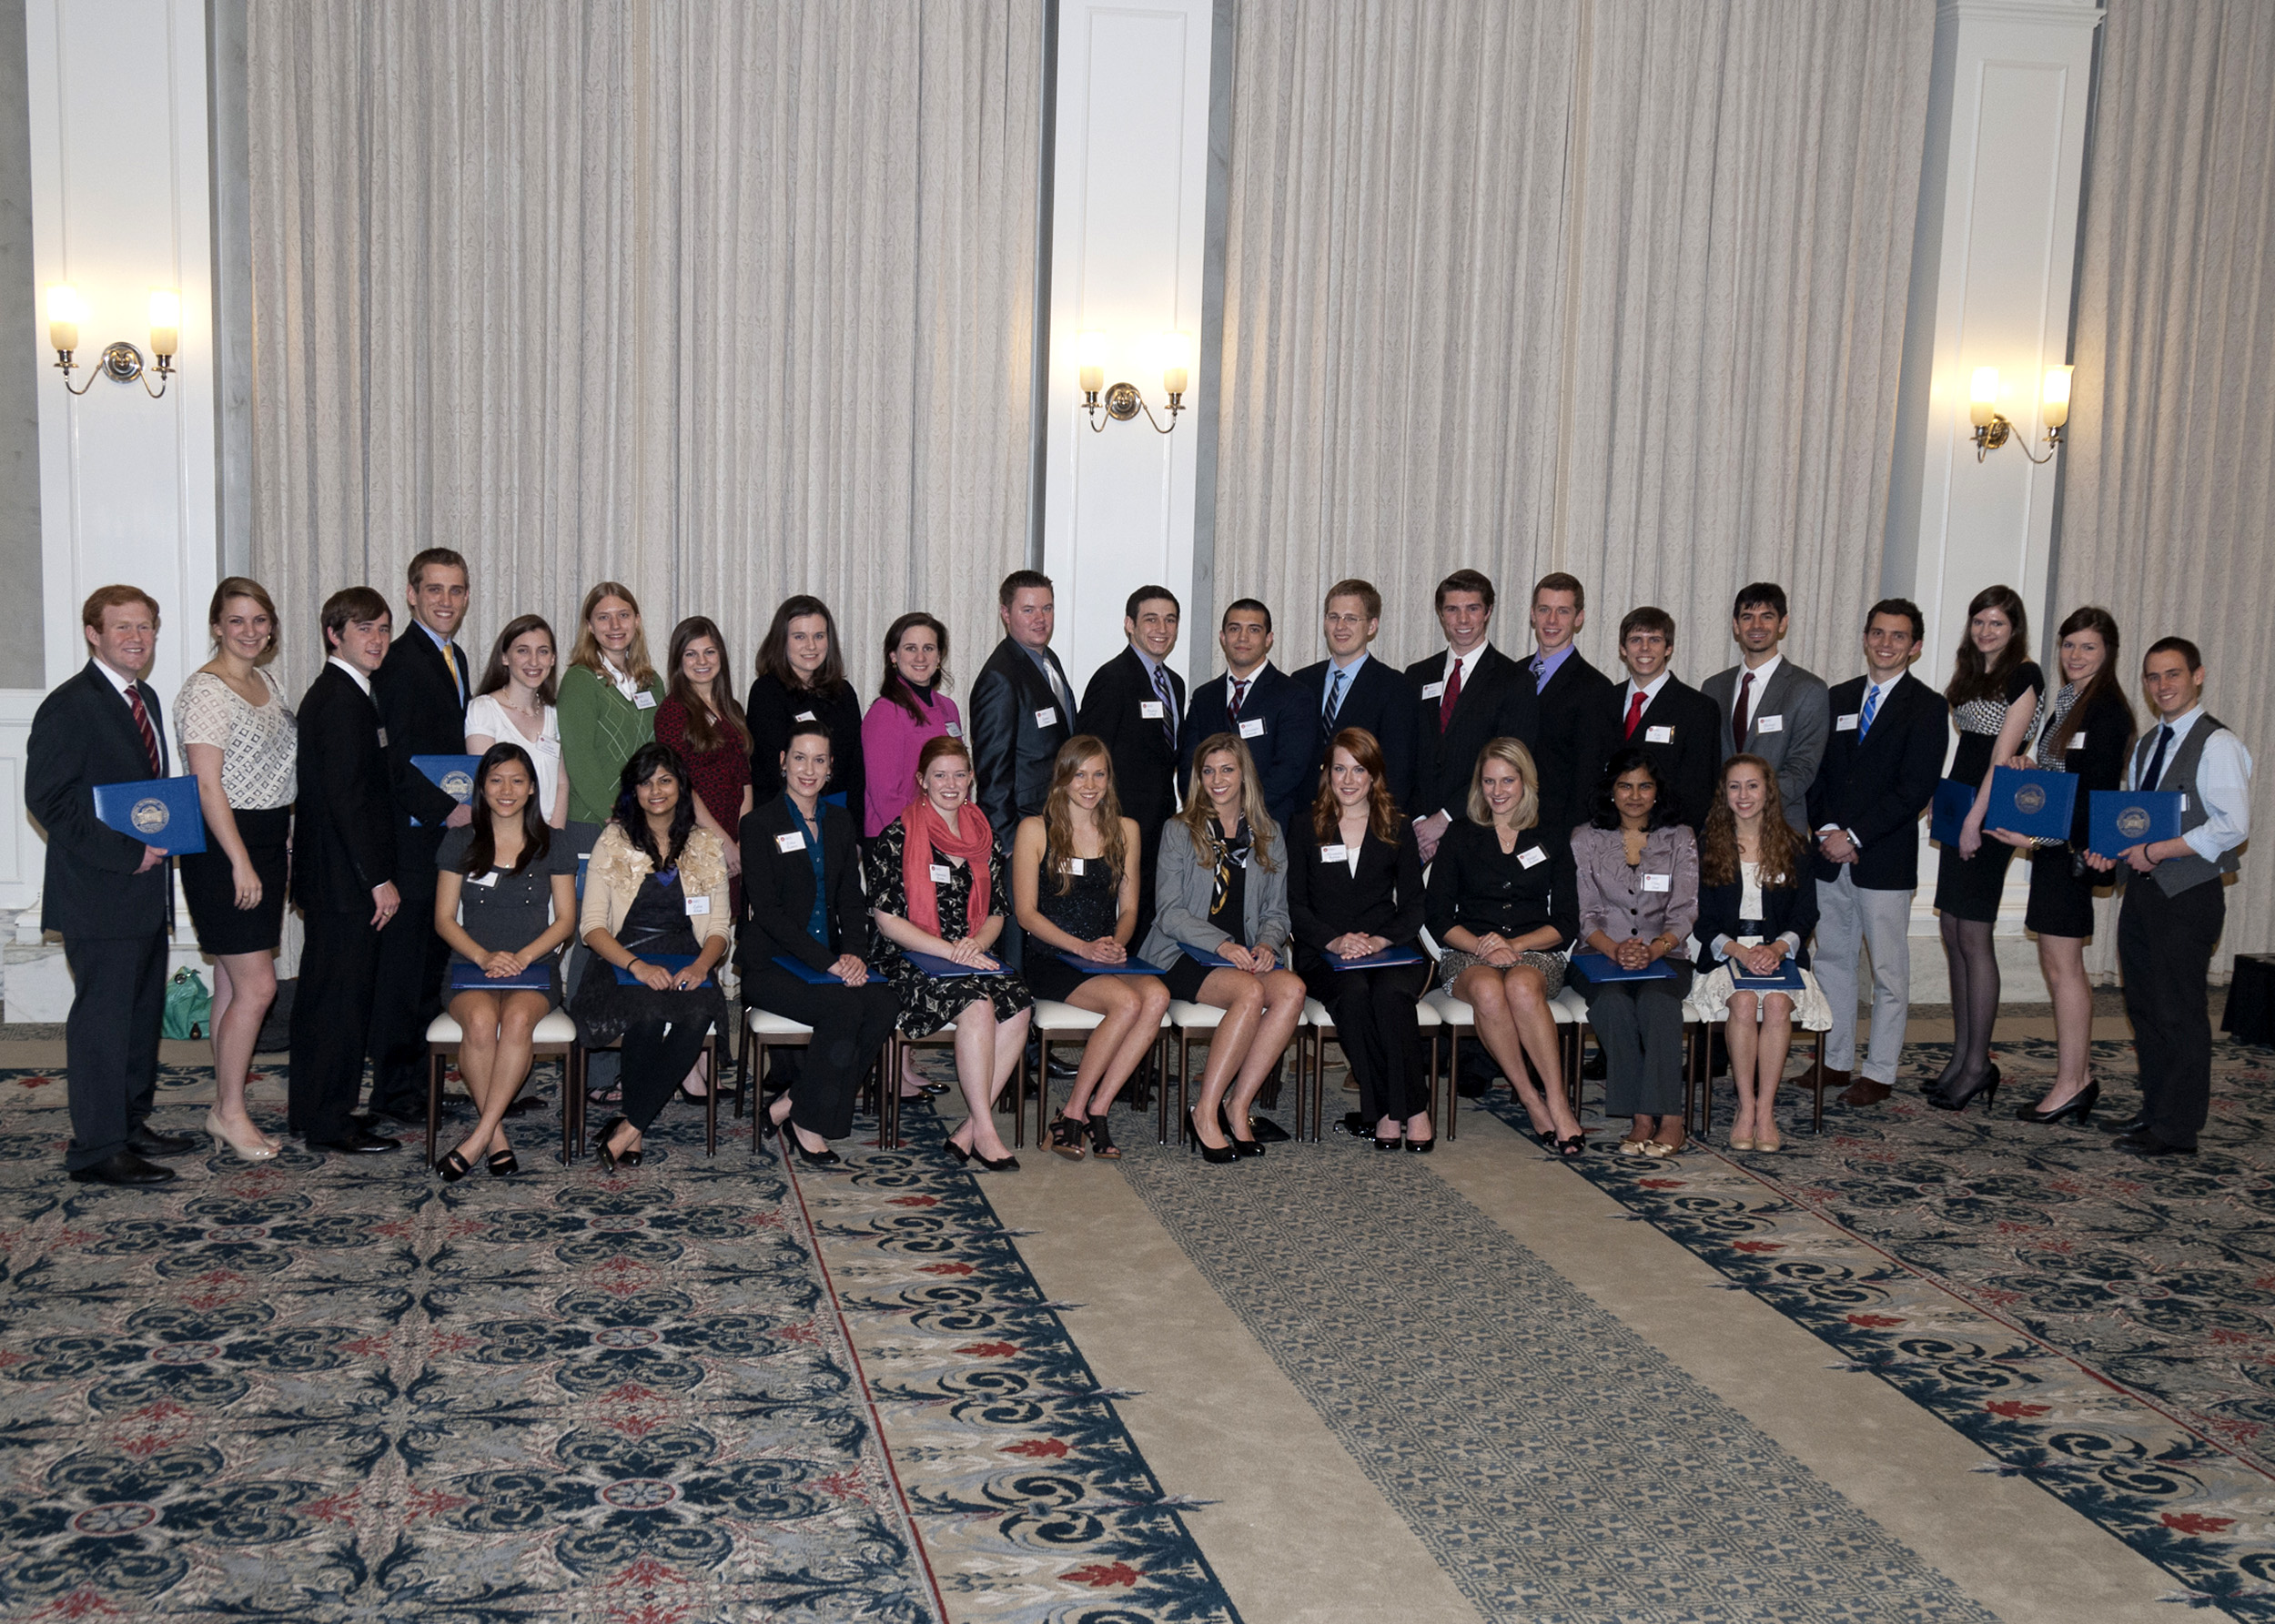 SMU Hyer Society group photo of 26 February 2012